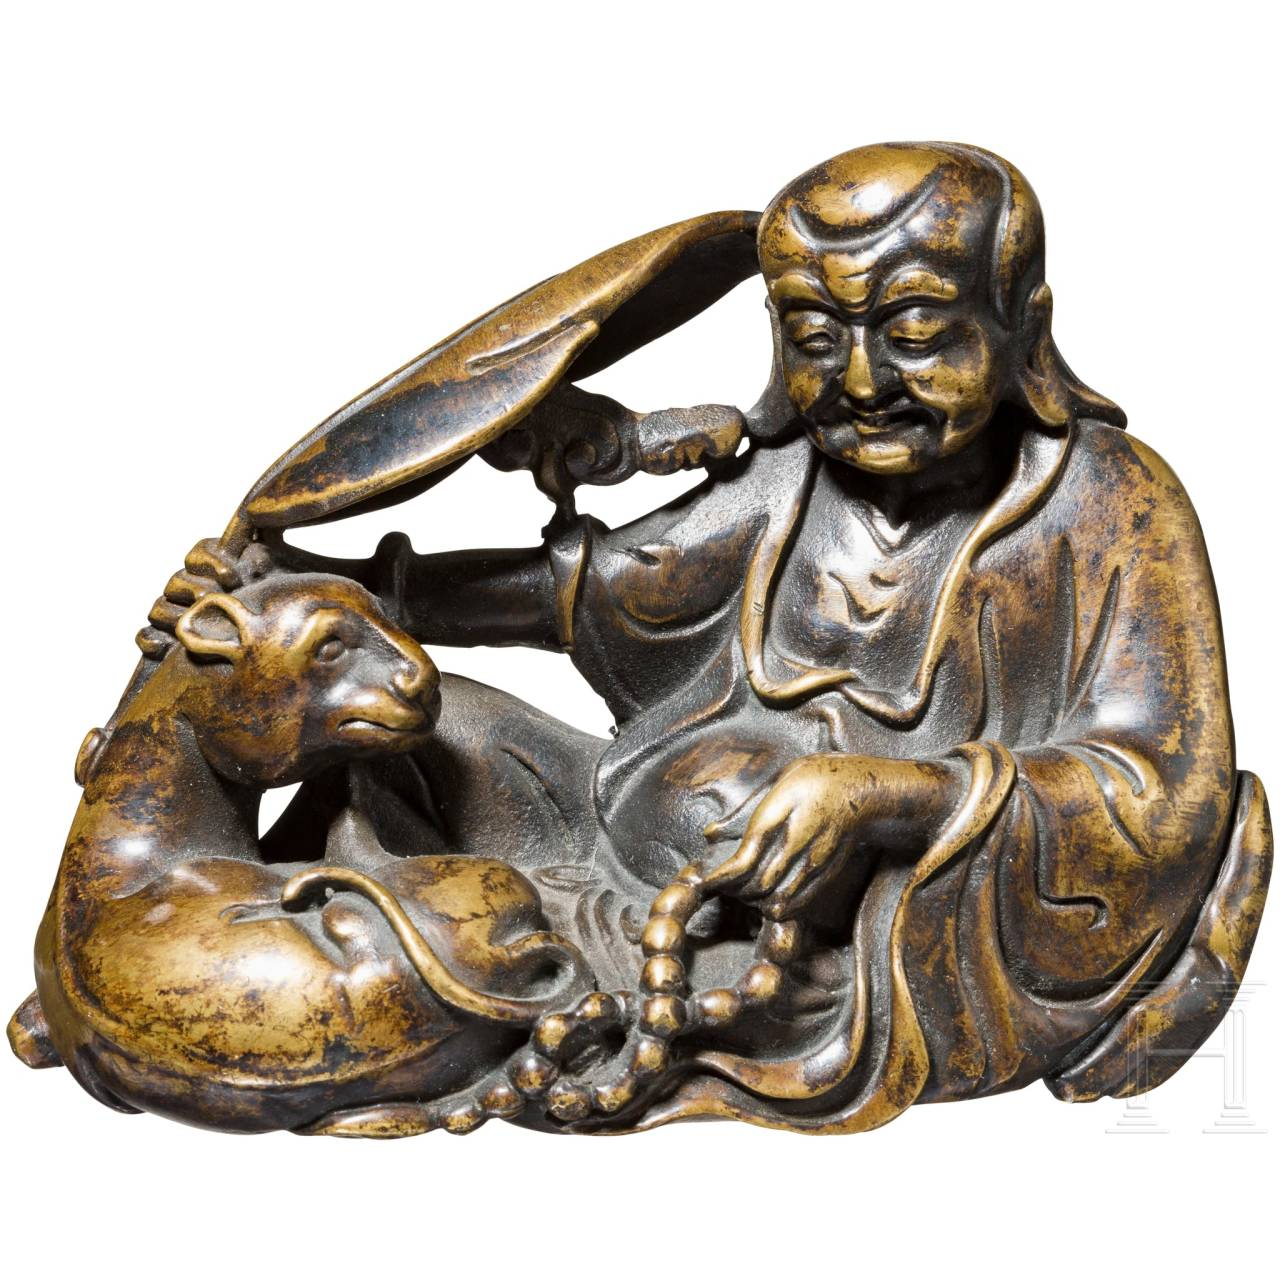 A small bronze of a resting wise man, China, 18th/19th century